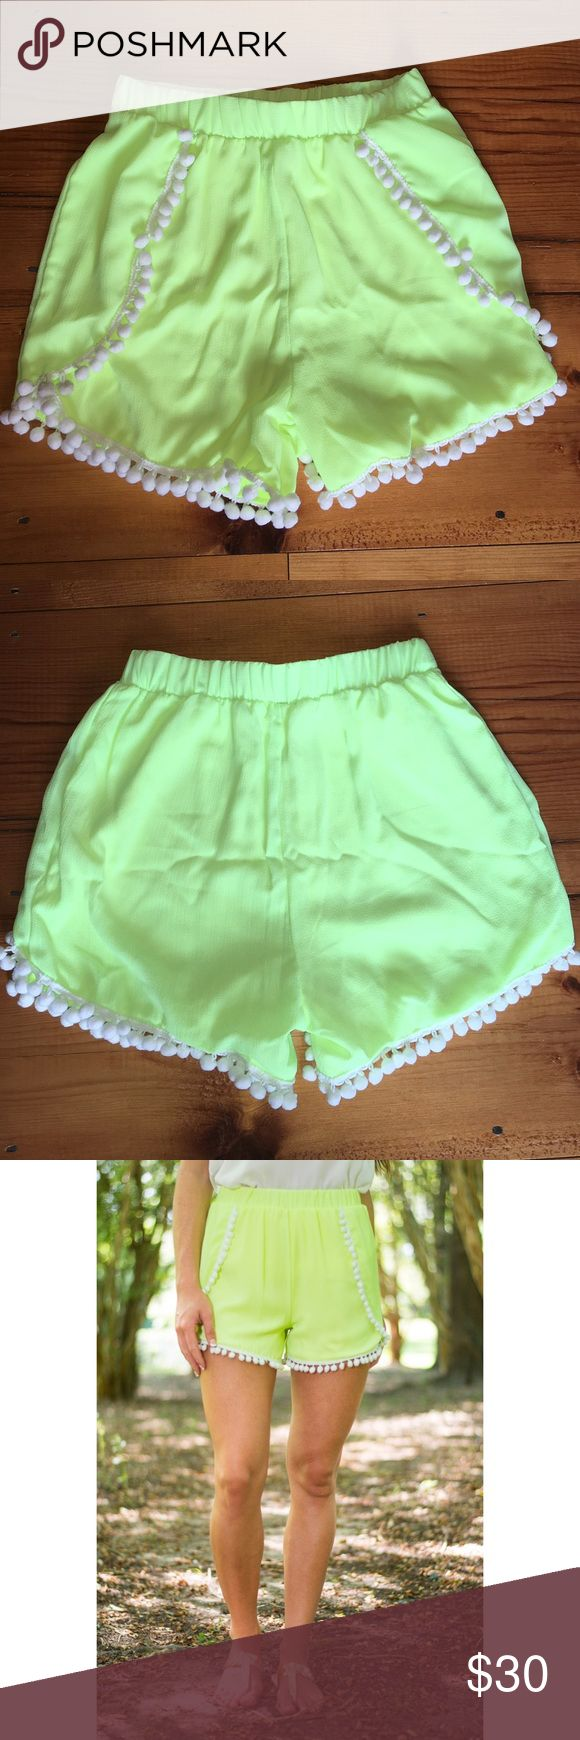 MINT JULEP BOUTIQUE shorts ⭐️PRICE IS FINAL⭐️ NO TRADES❌ *all offers will be ignored* mint julep boutique Shorts